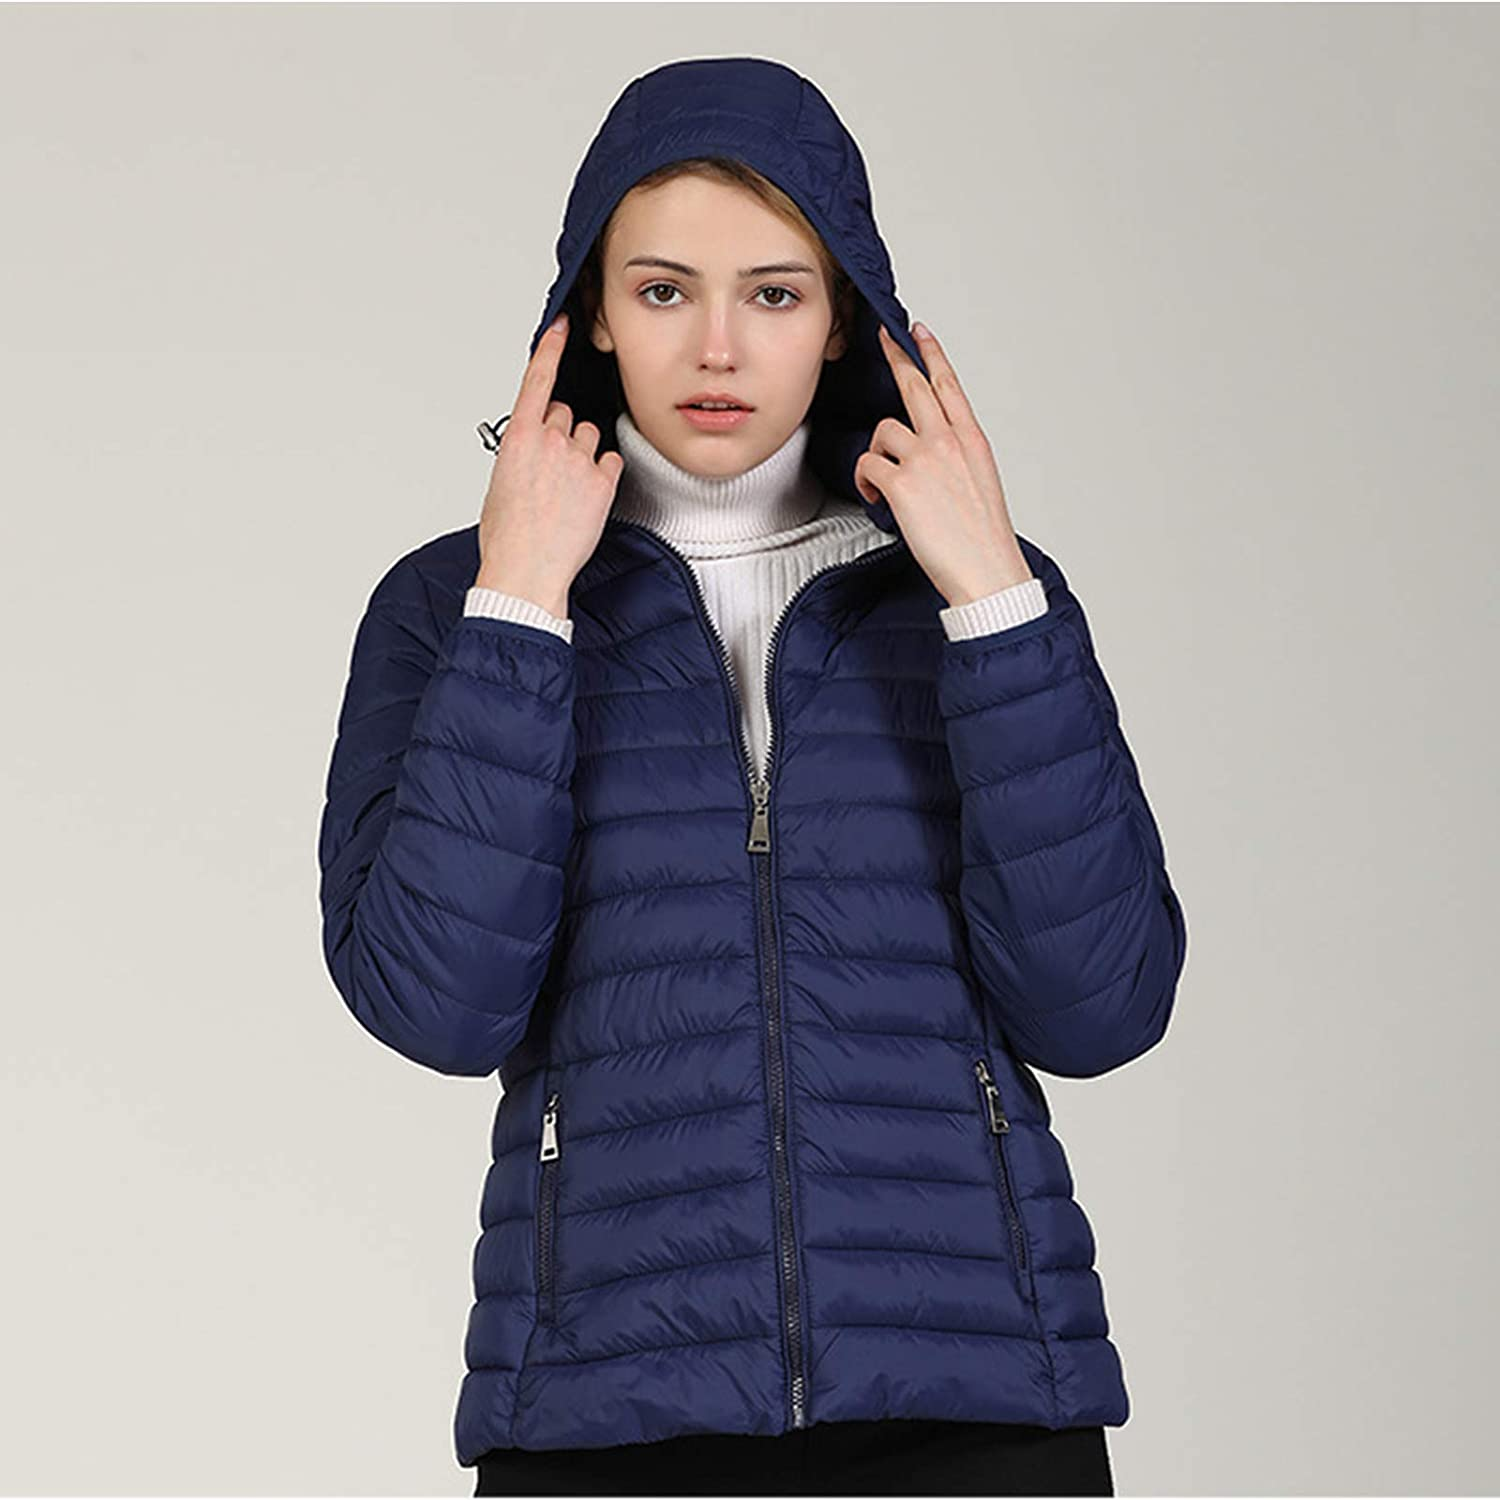 ZhaoZC Spring and Autumn Don't miss the campaign Limited time cheap sale Short Lightweight Women's Jacket Padded